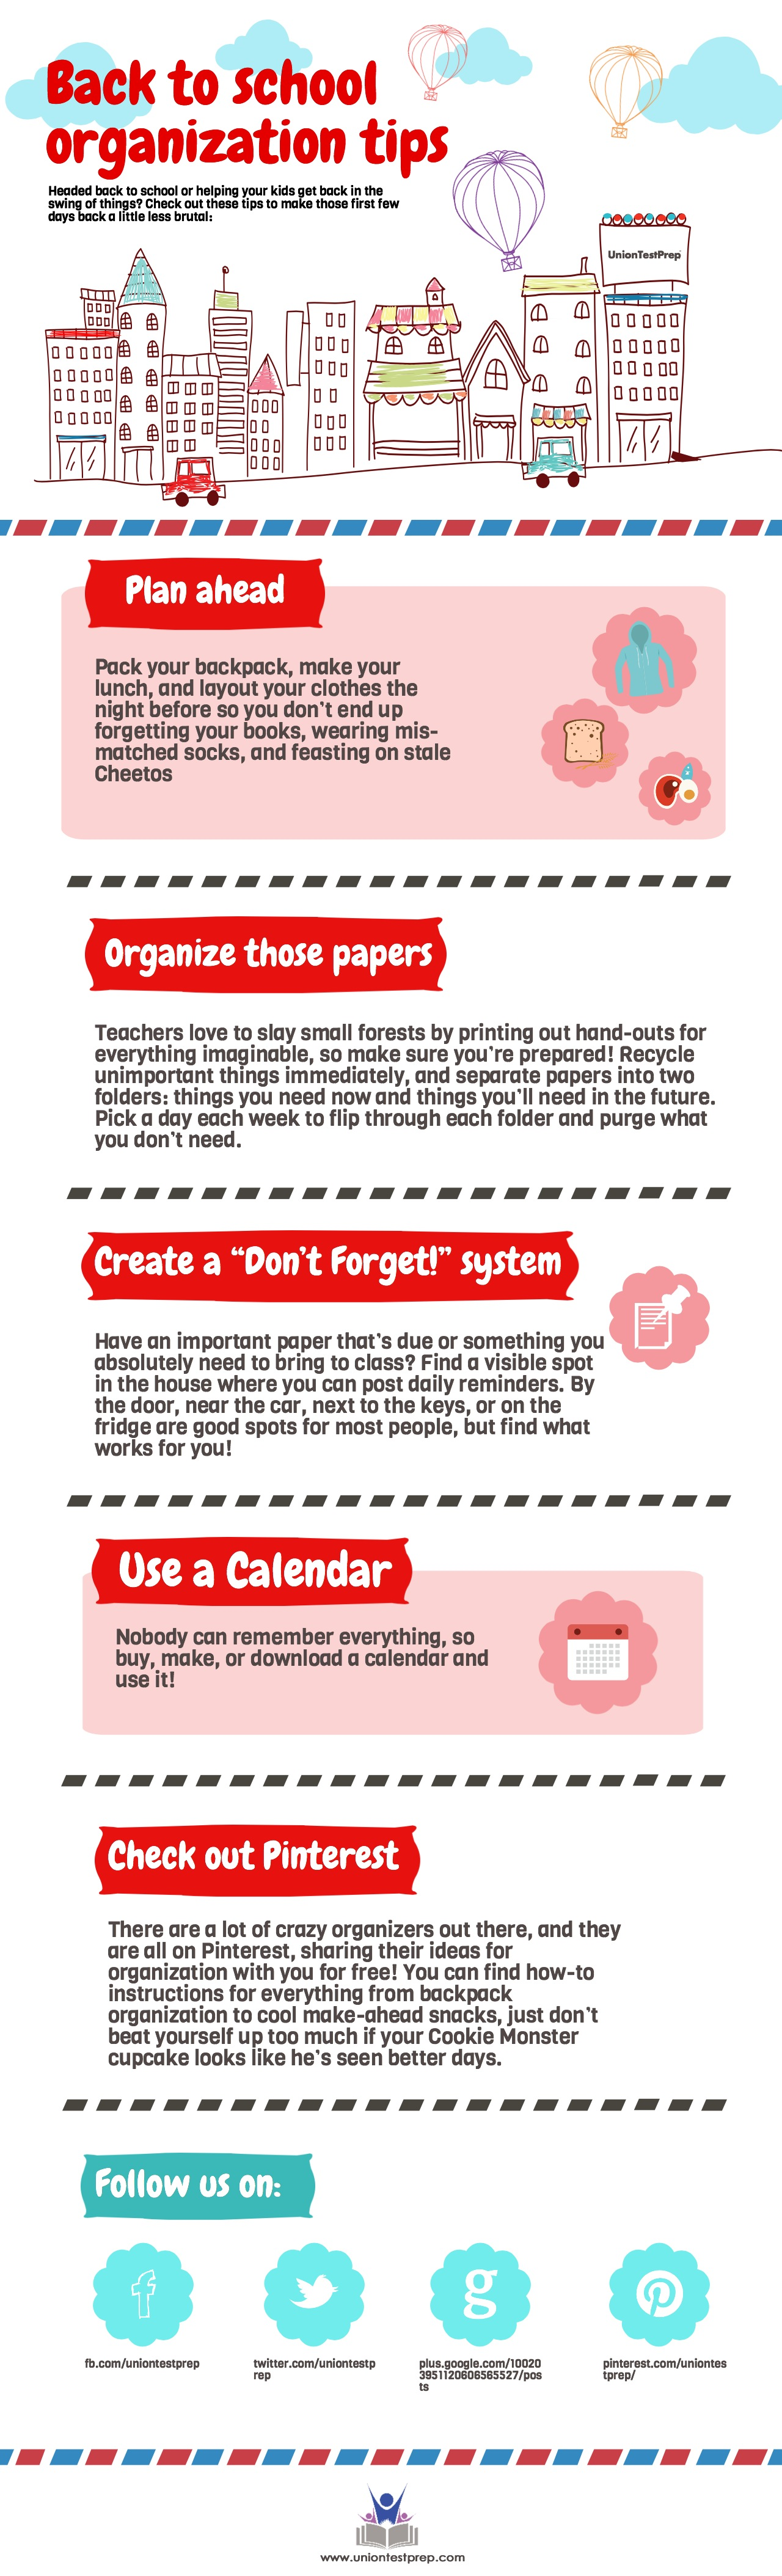 Ways to get organized for back-to-school